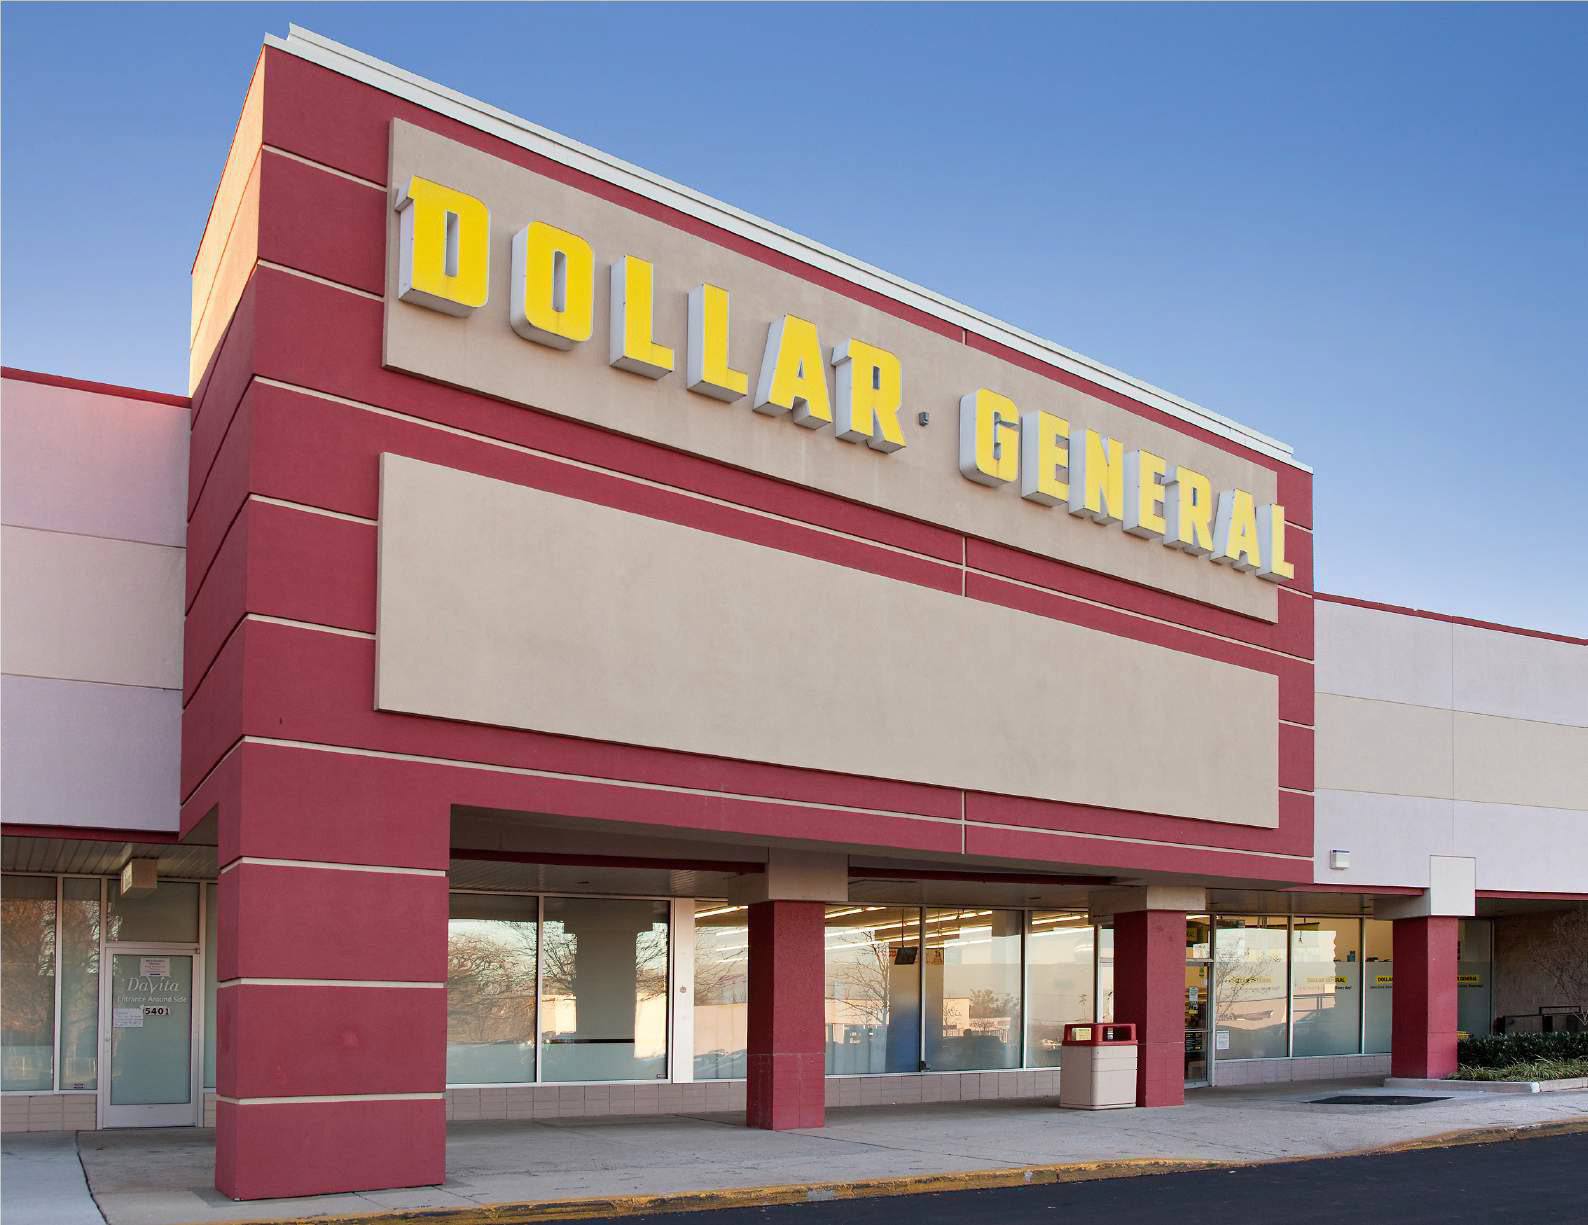 Catonsville Plaza Dollar General